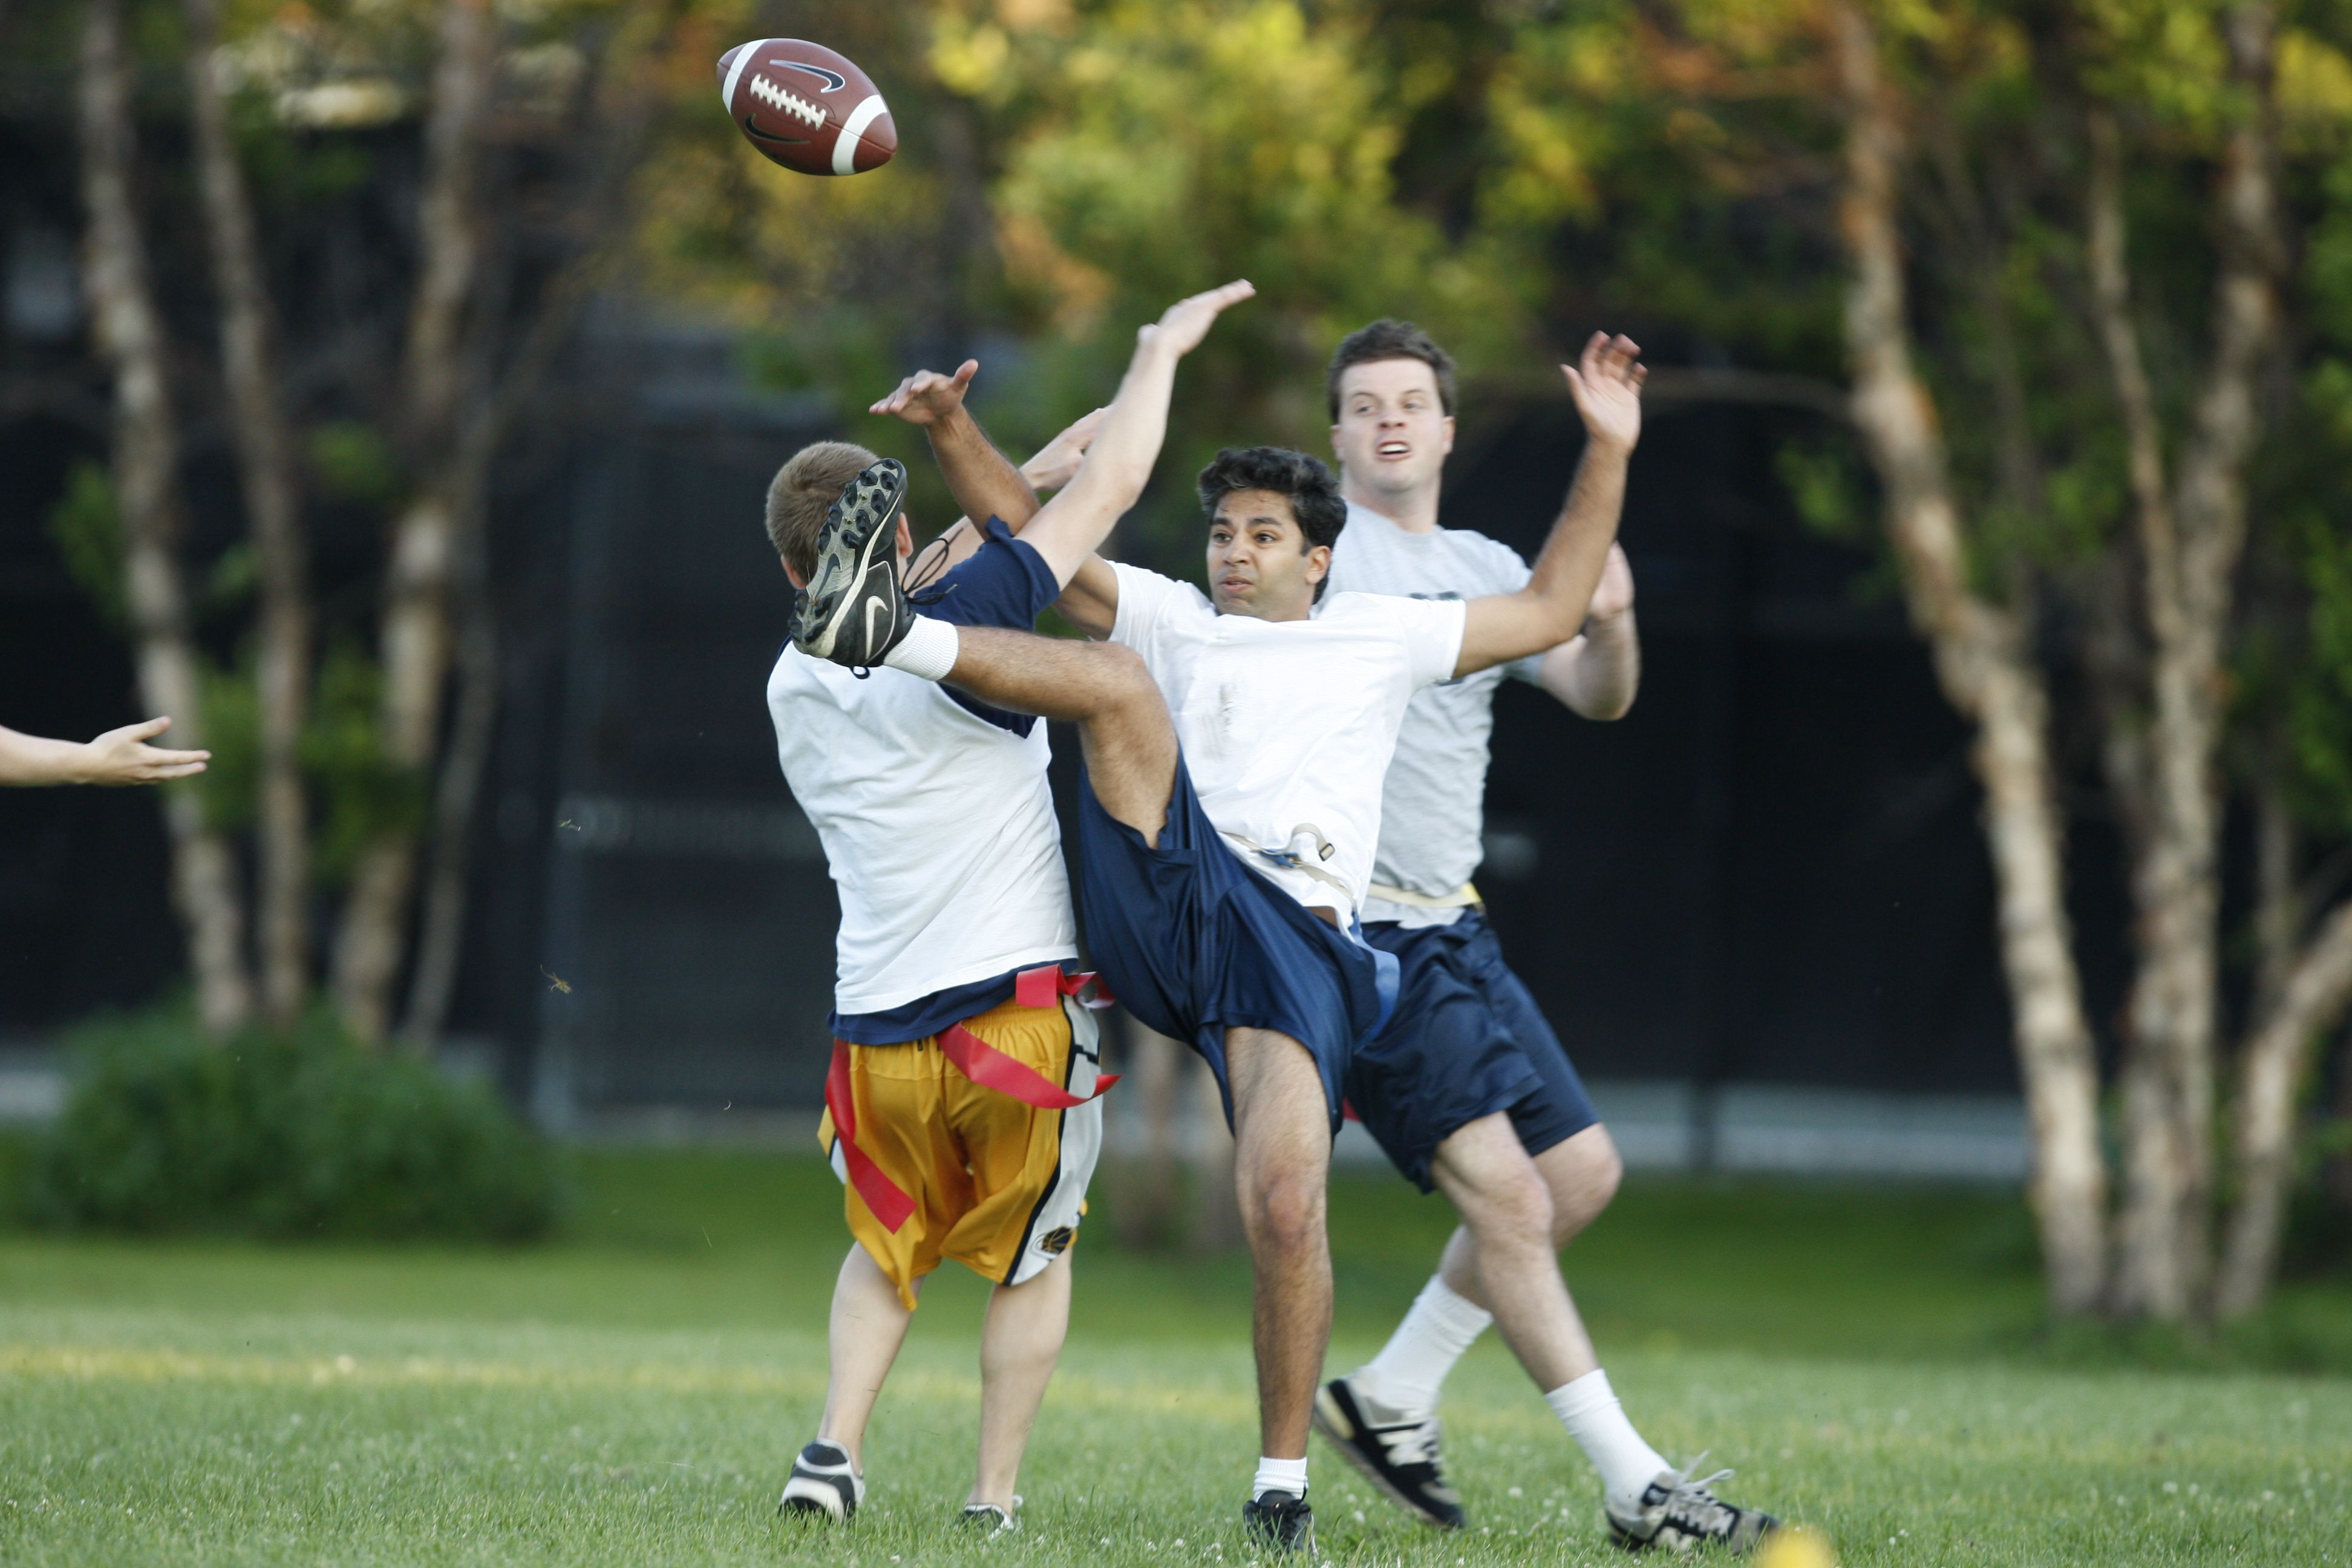 All Tangled Up On The Football Field Flag Football League Football Flag Football